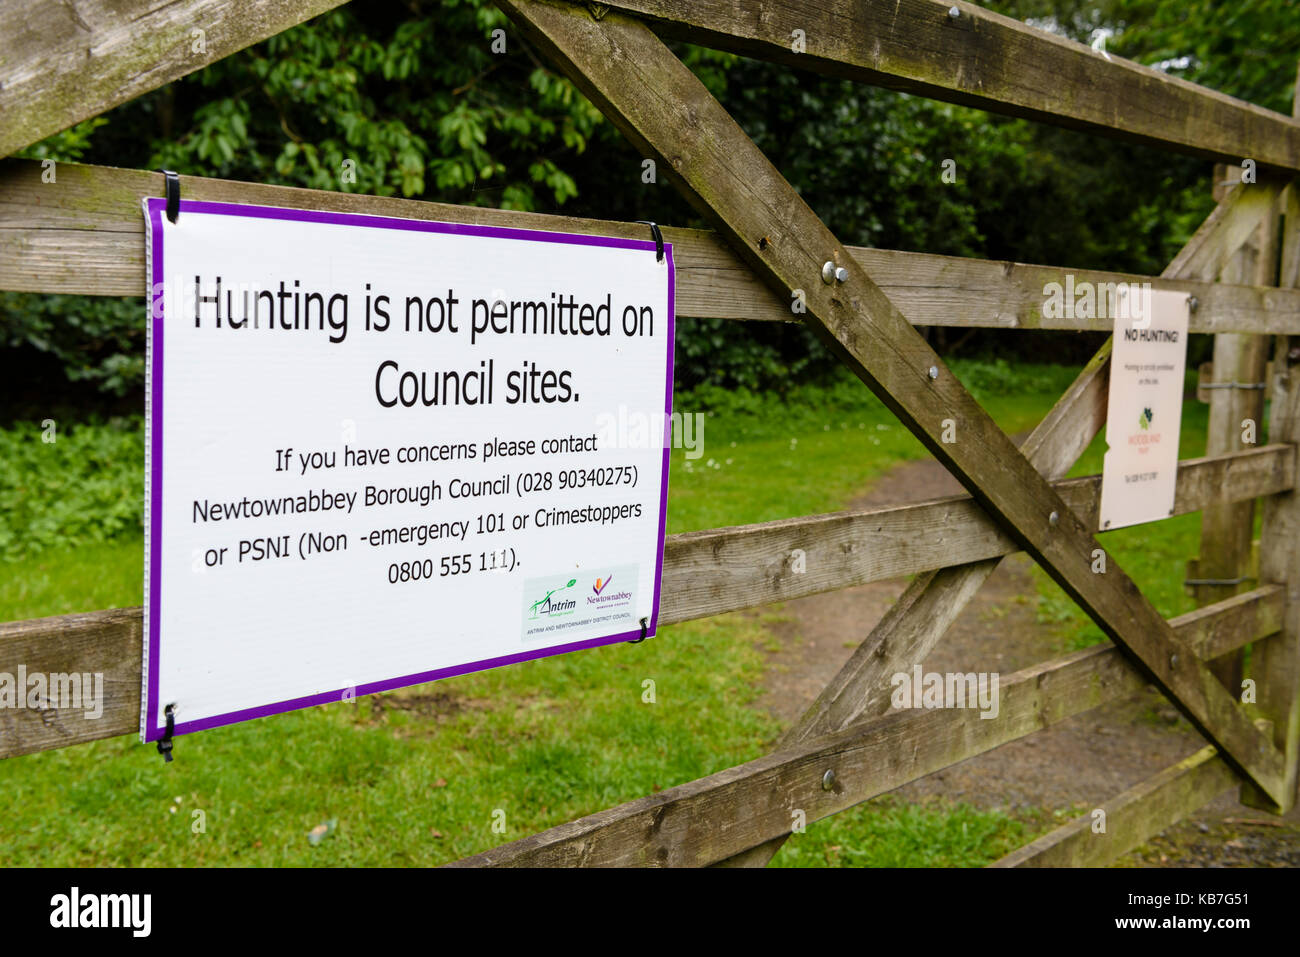 sign at a public park warning visitors against hunting on council